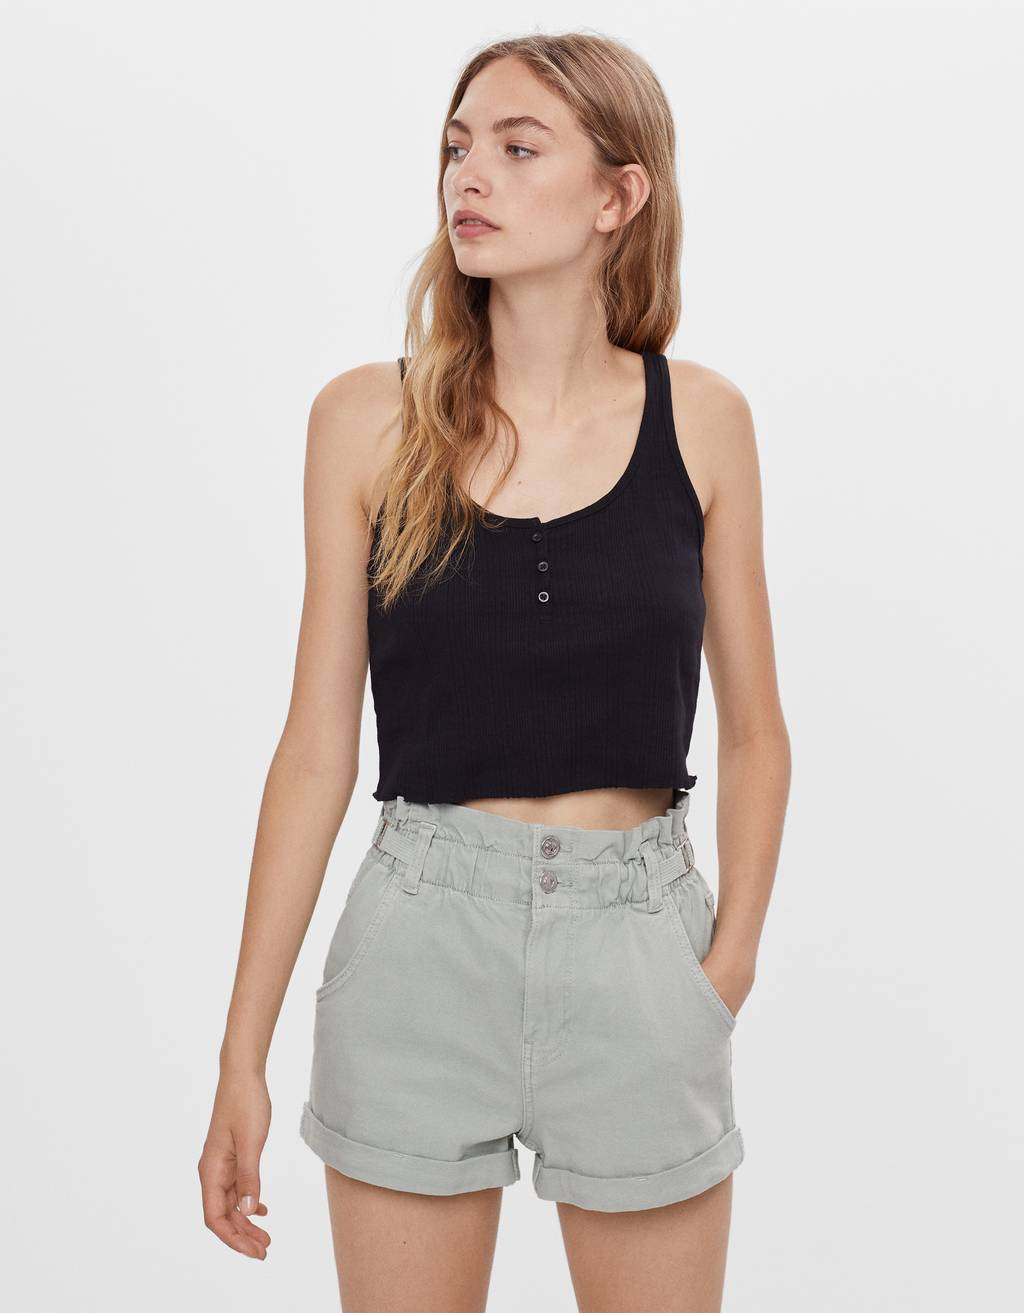 Shorts with elastic waistband and belt loops